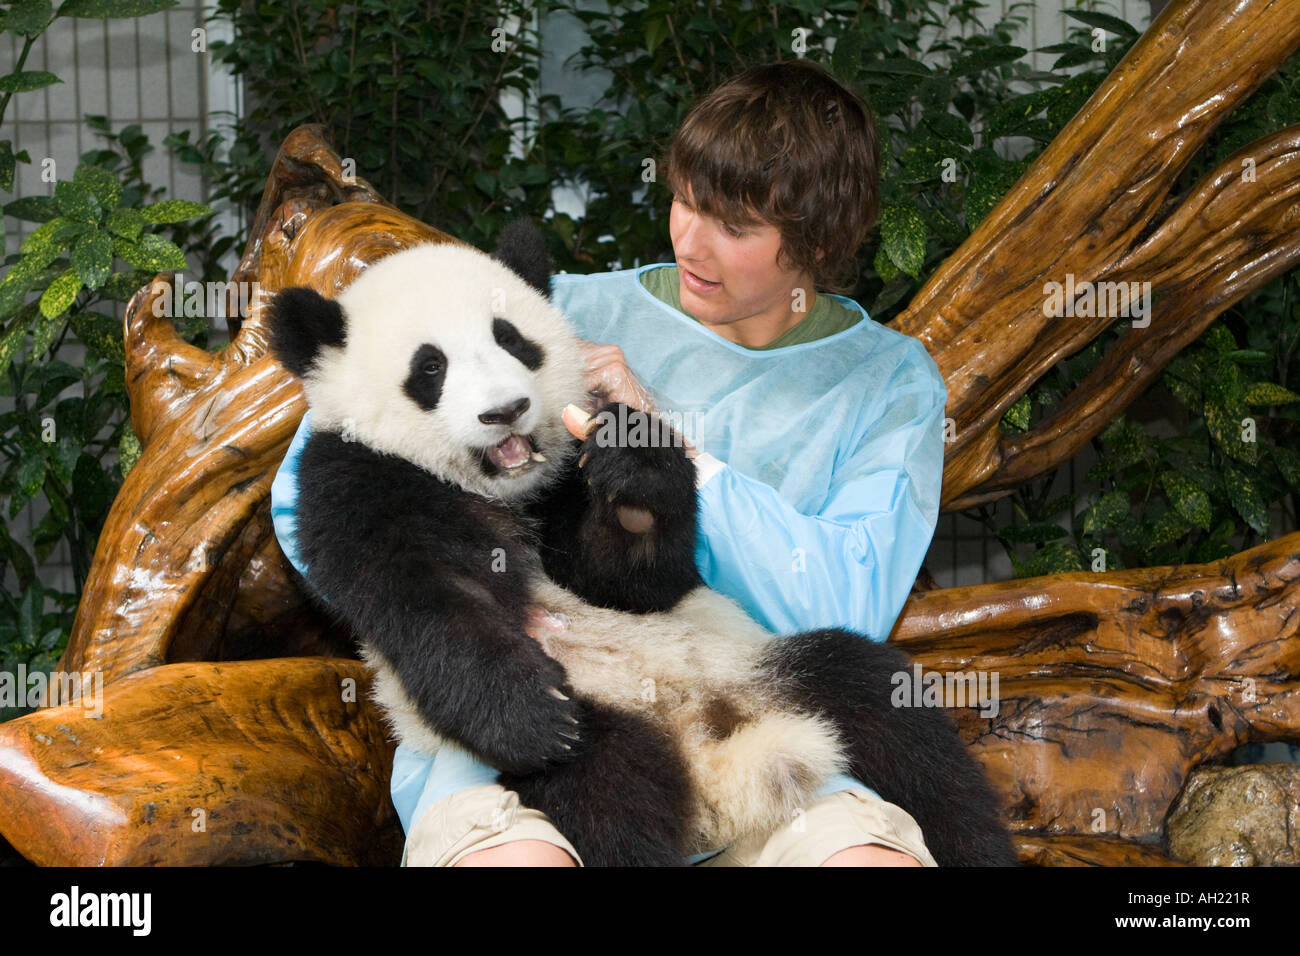 captive breeding in panda bears essay The effects of captivity on the morphology of captive,  captive breeding, domestication, feral, morphological change, phenotypic plastic-ity, reintroduction introduction there is increasing awareness of the potential for 'domestication' to occur as a by-product.